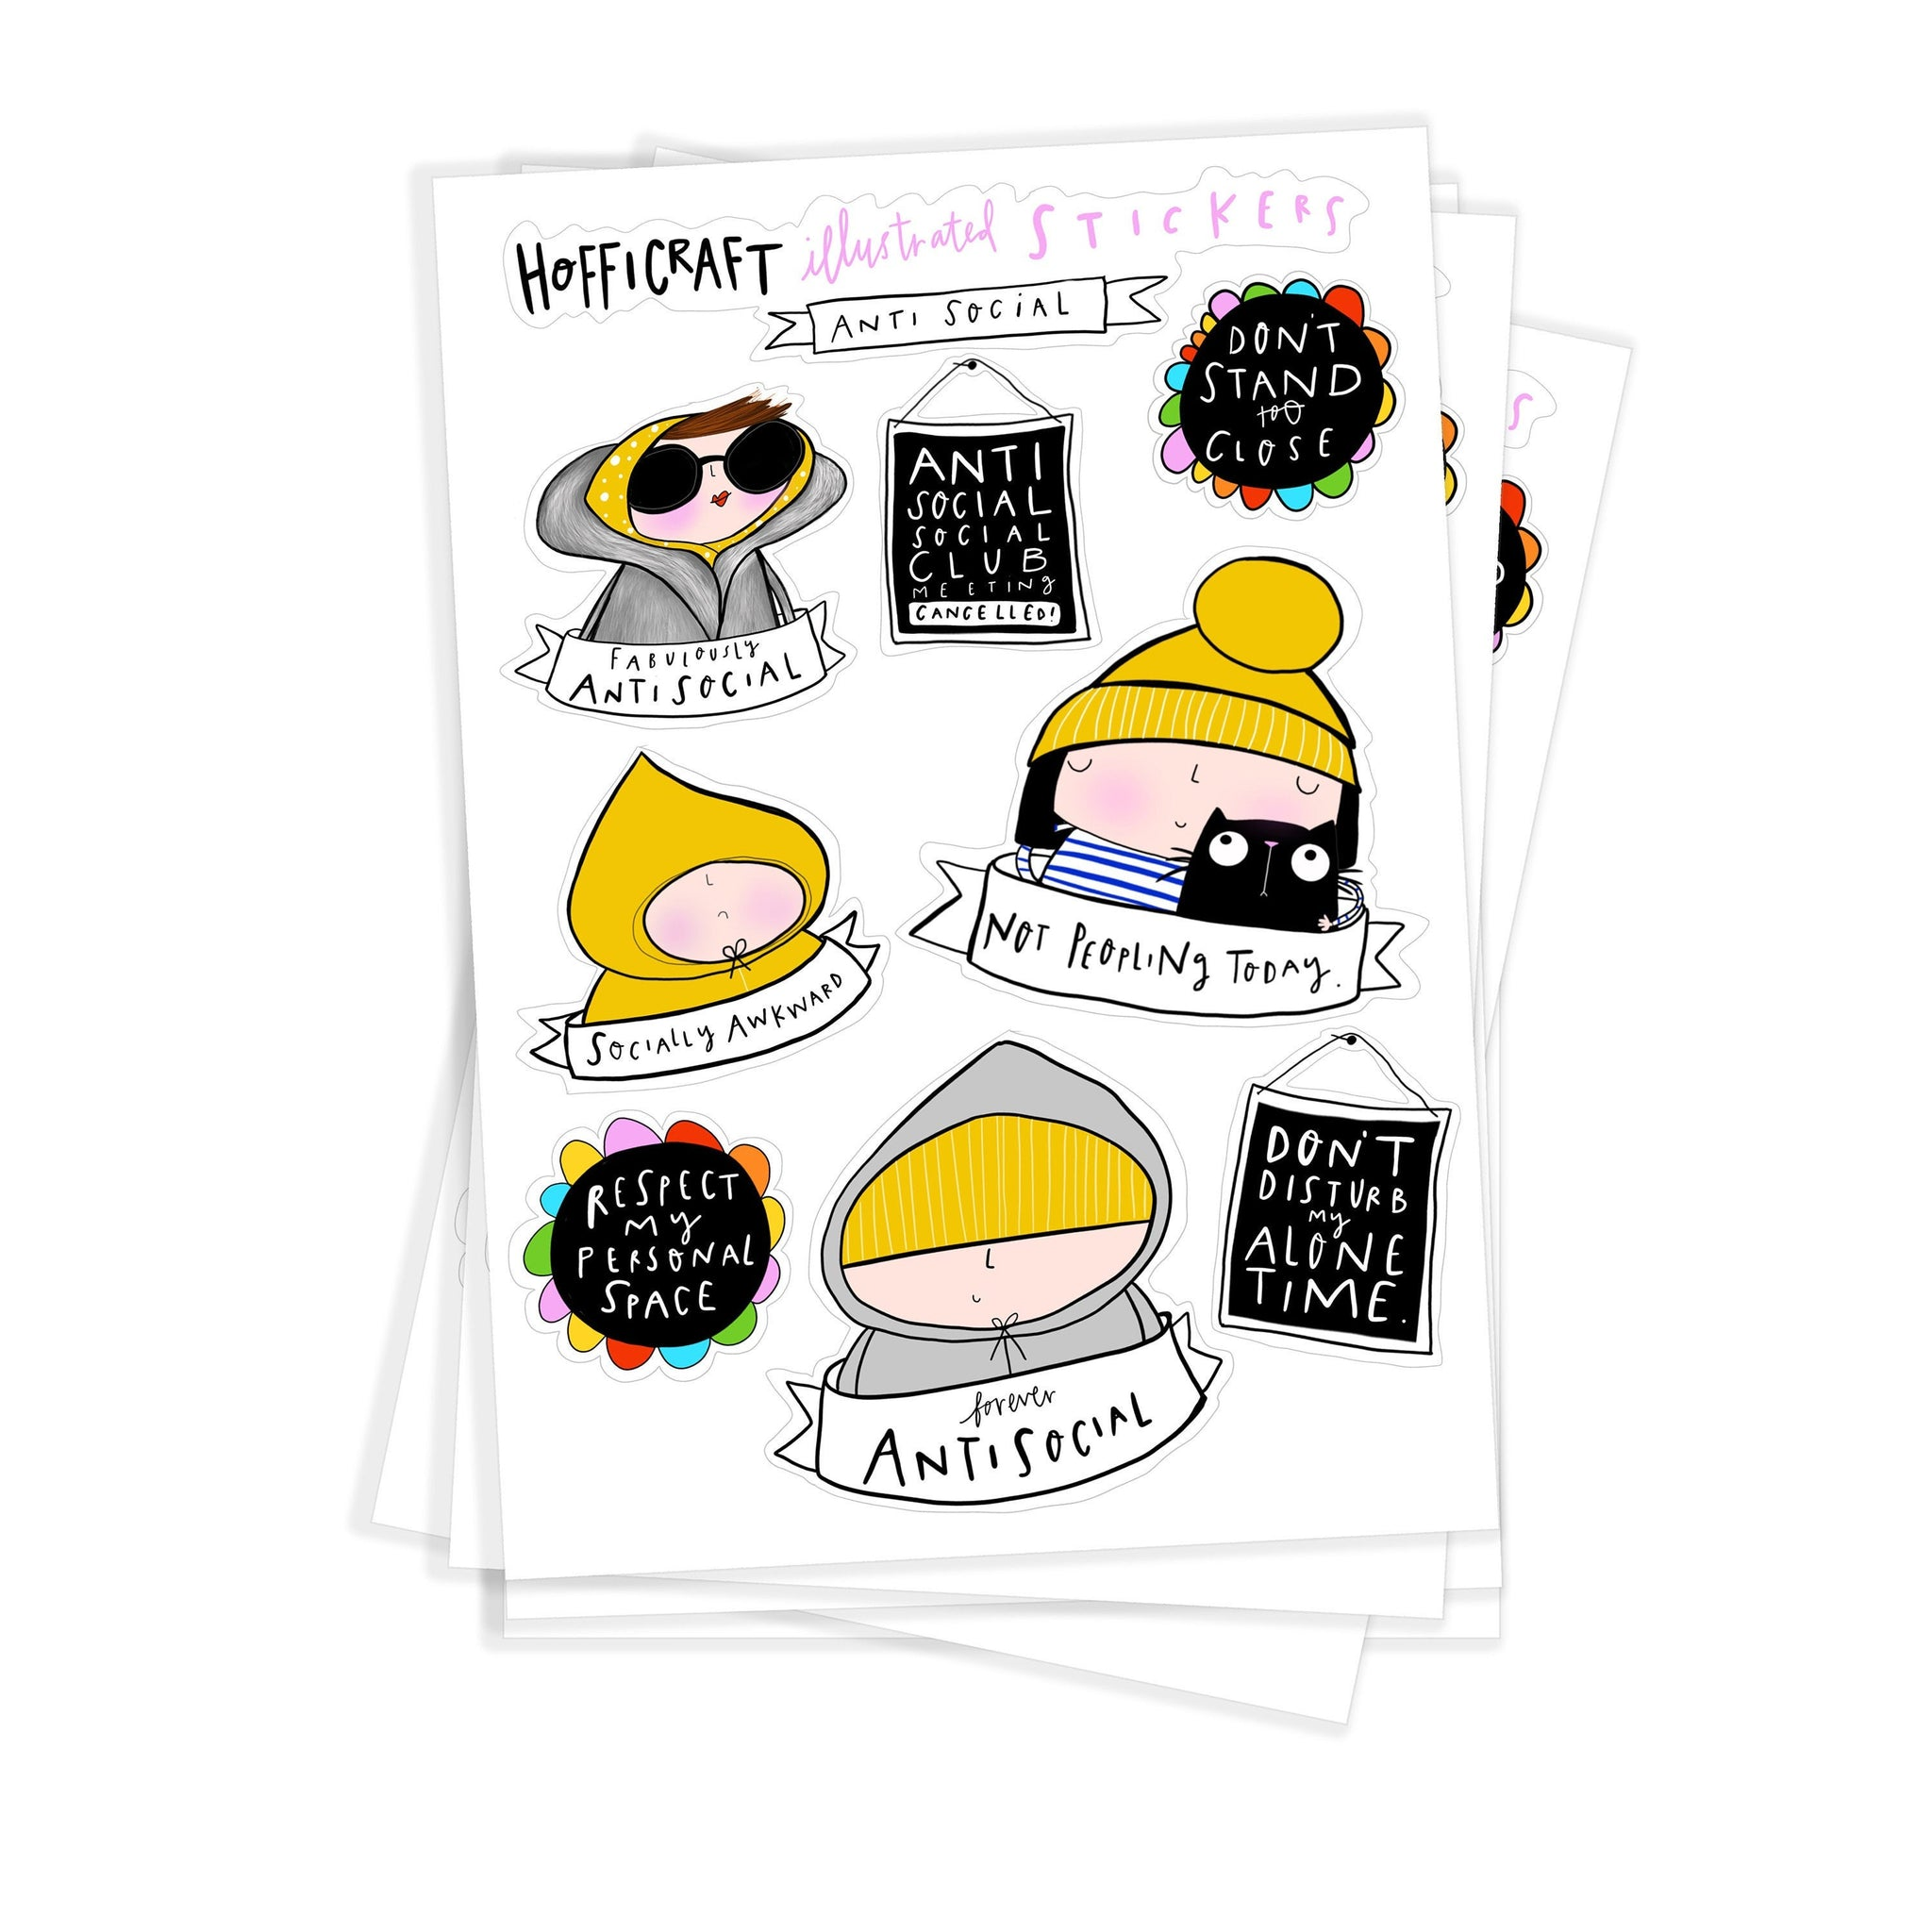 Anti social sticker sheet - Hofficraft